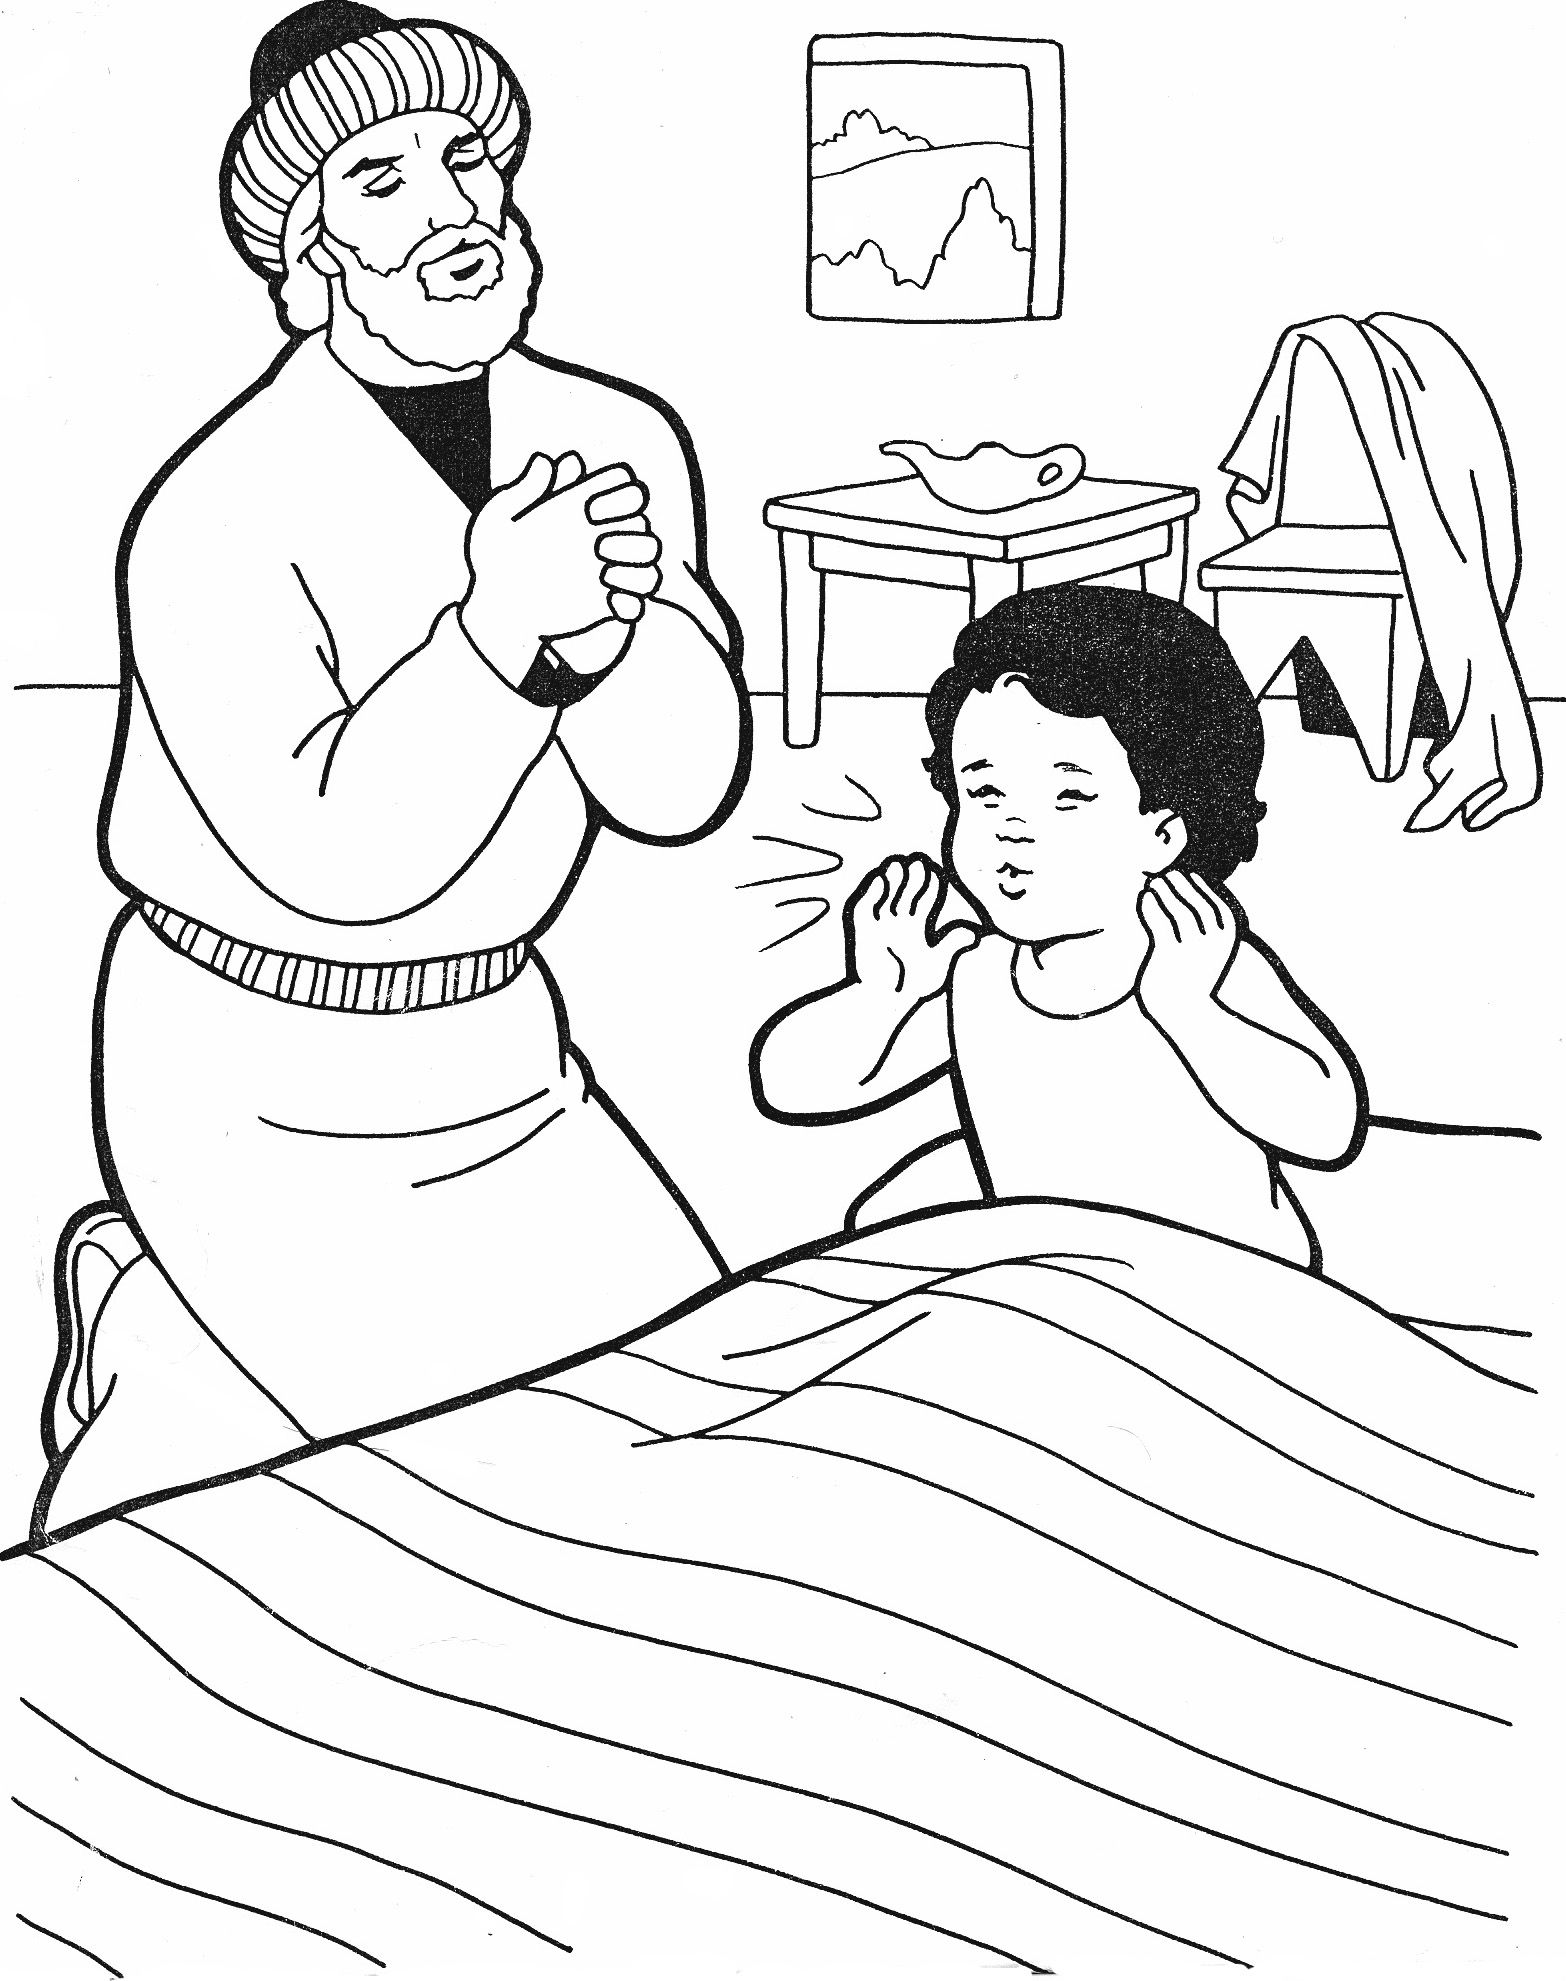 elisha and the widow coloring page the widow of the prophet asks elisha for help coloring and coloring page widow elisha the